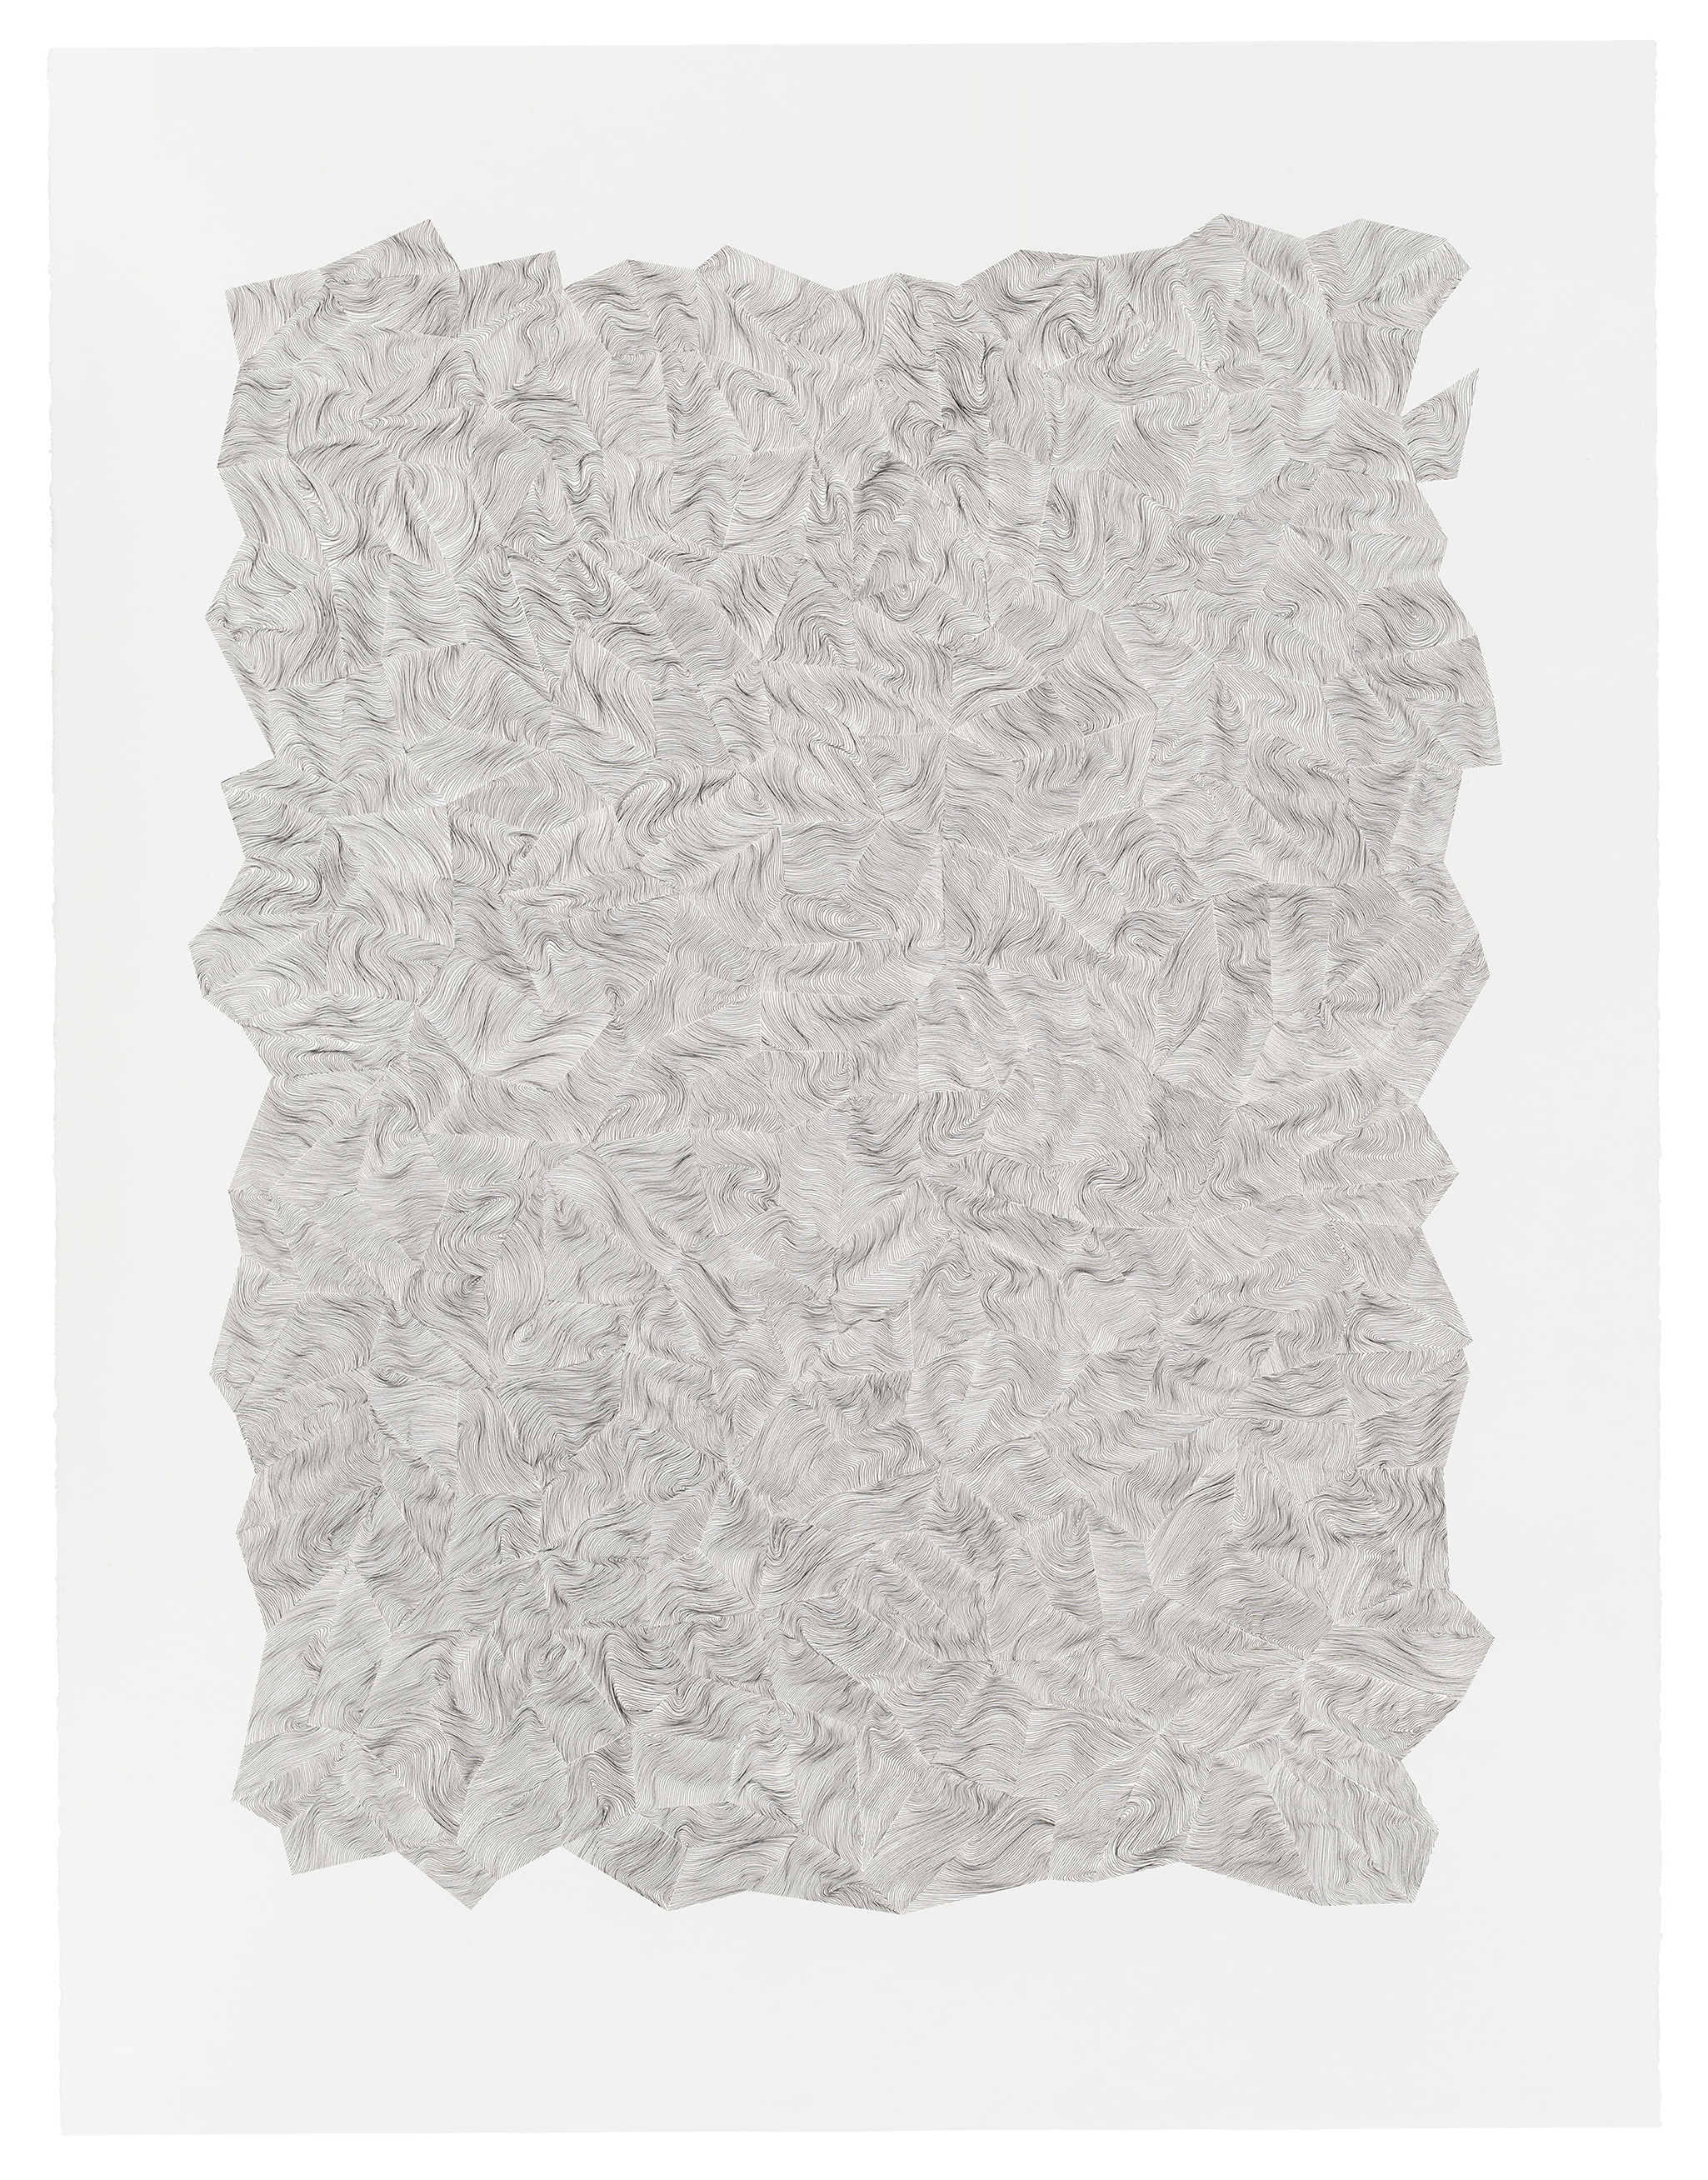 In the Contours of Time , 2014, Ink on Paper, 40.5 x 52 inches [framed size]